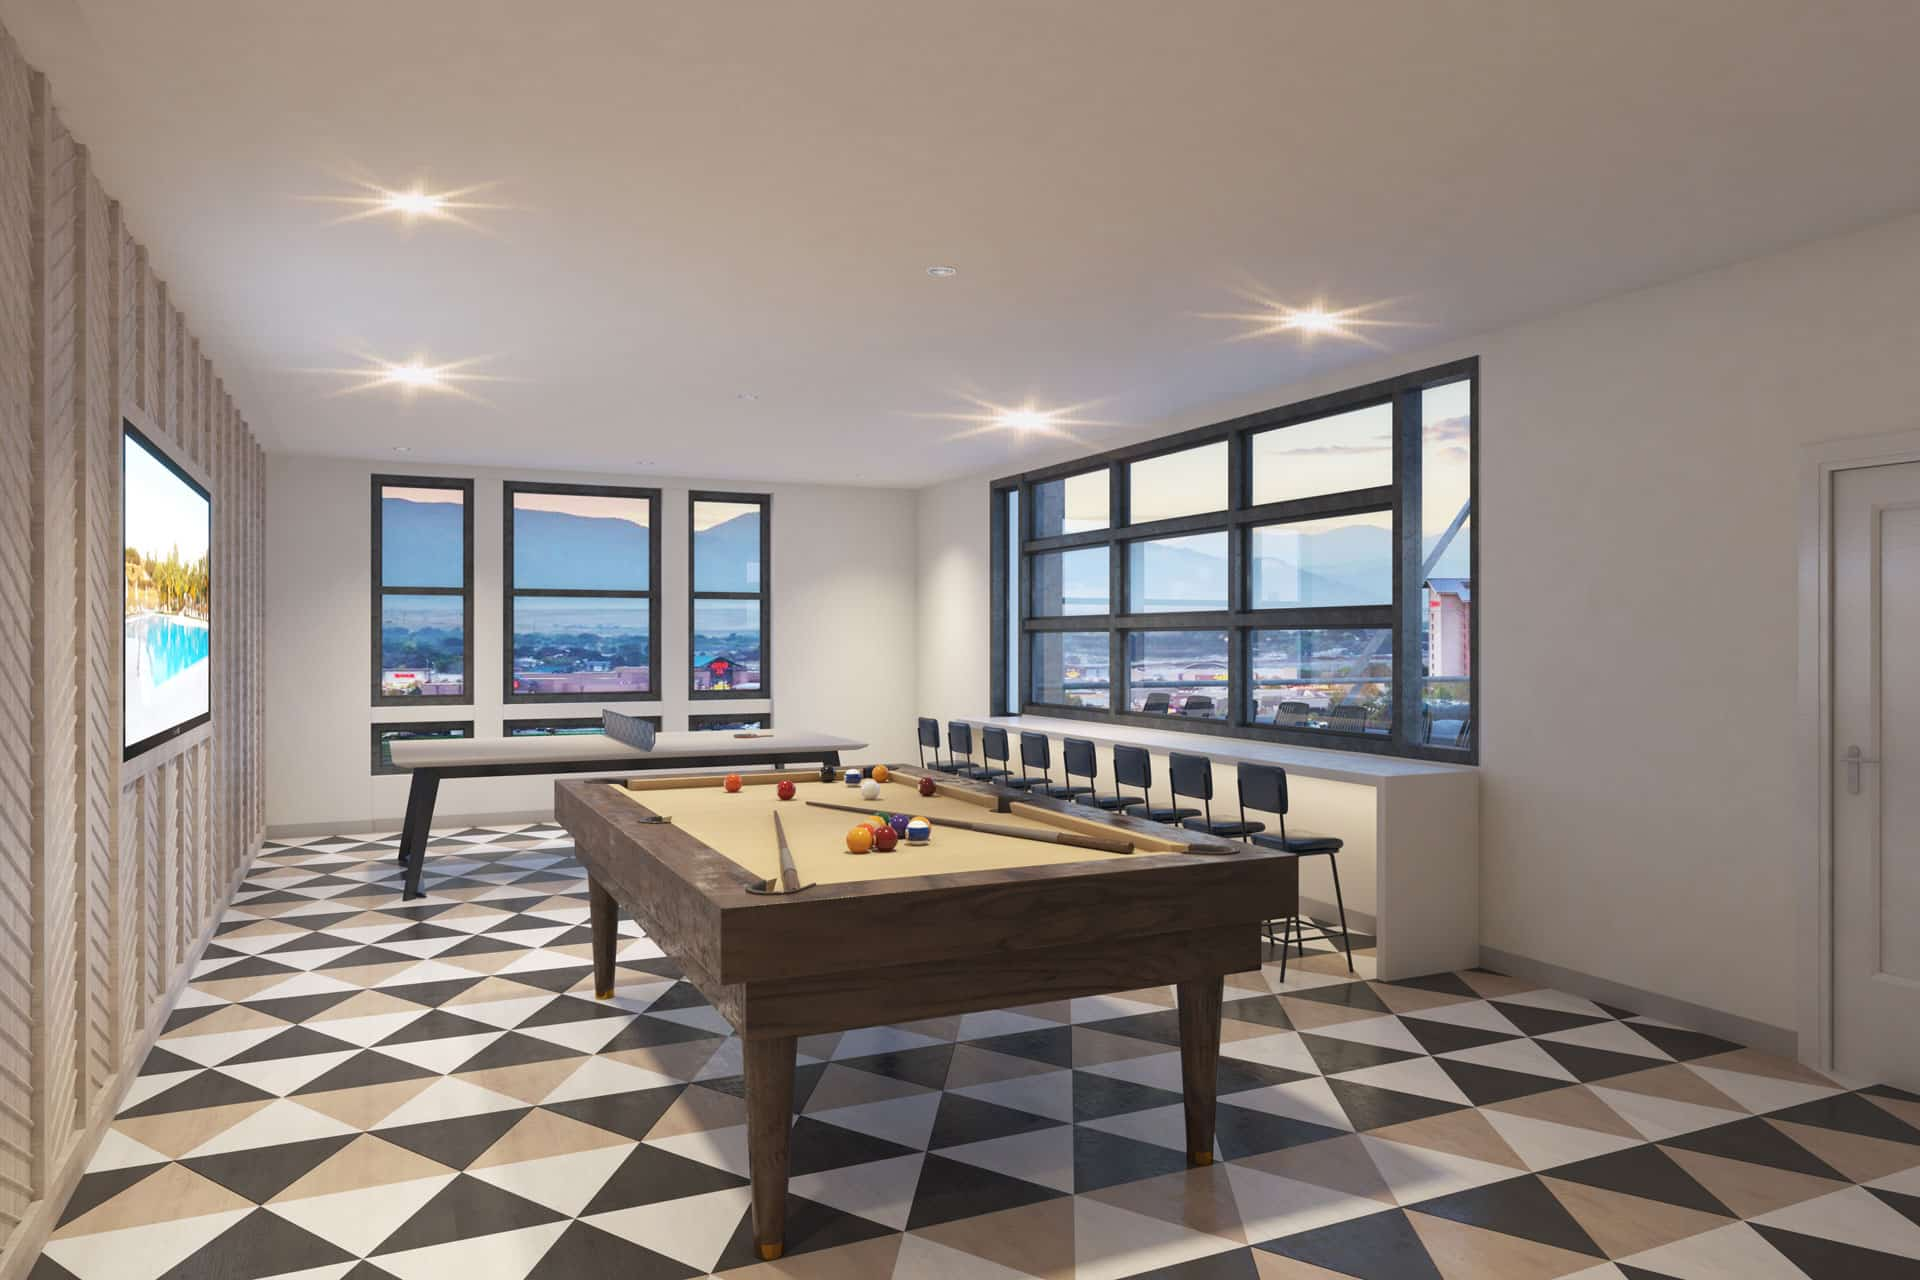 Game Room with Billiard and Ping Pong Tables